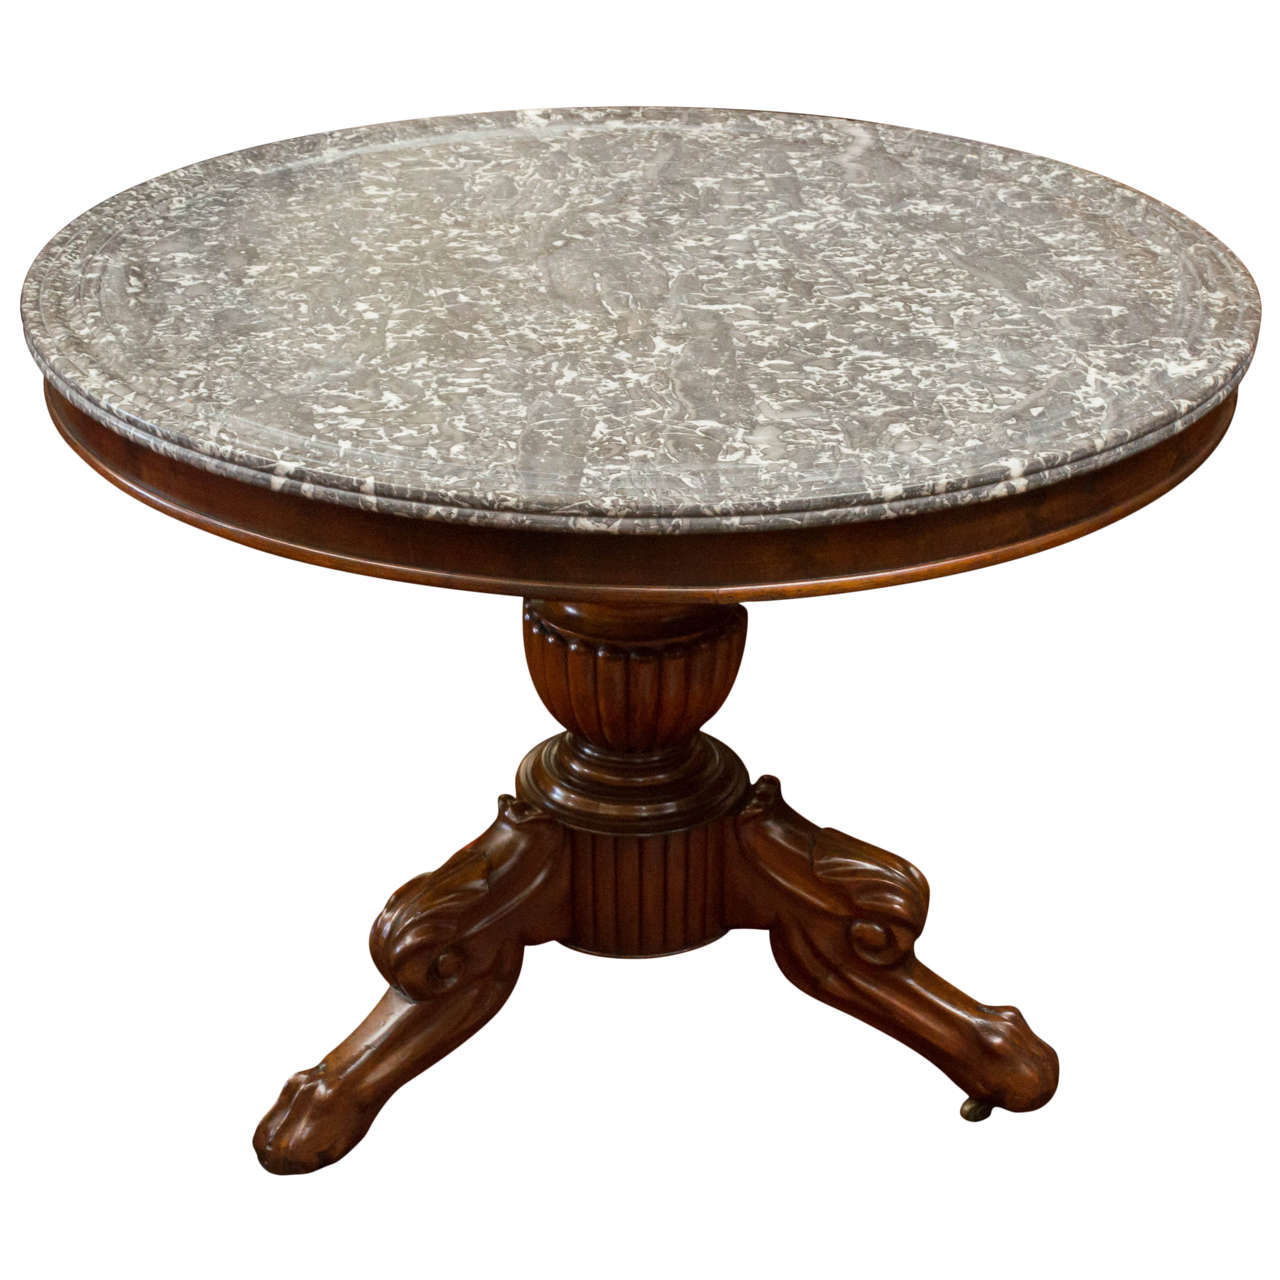 19th century french marble top center table for sale at for Marble table tops for sale